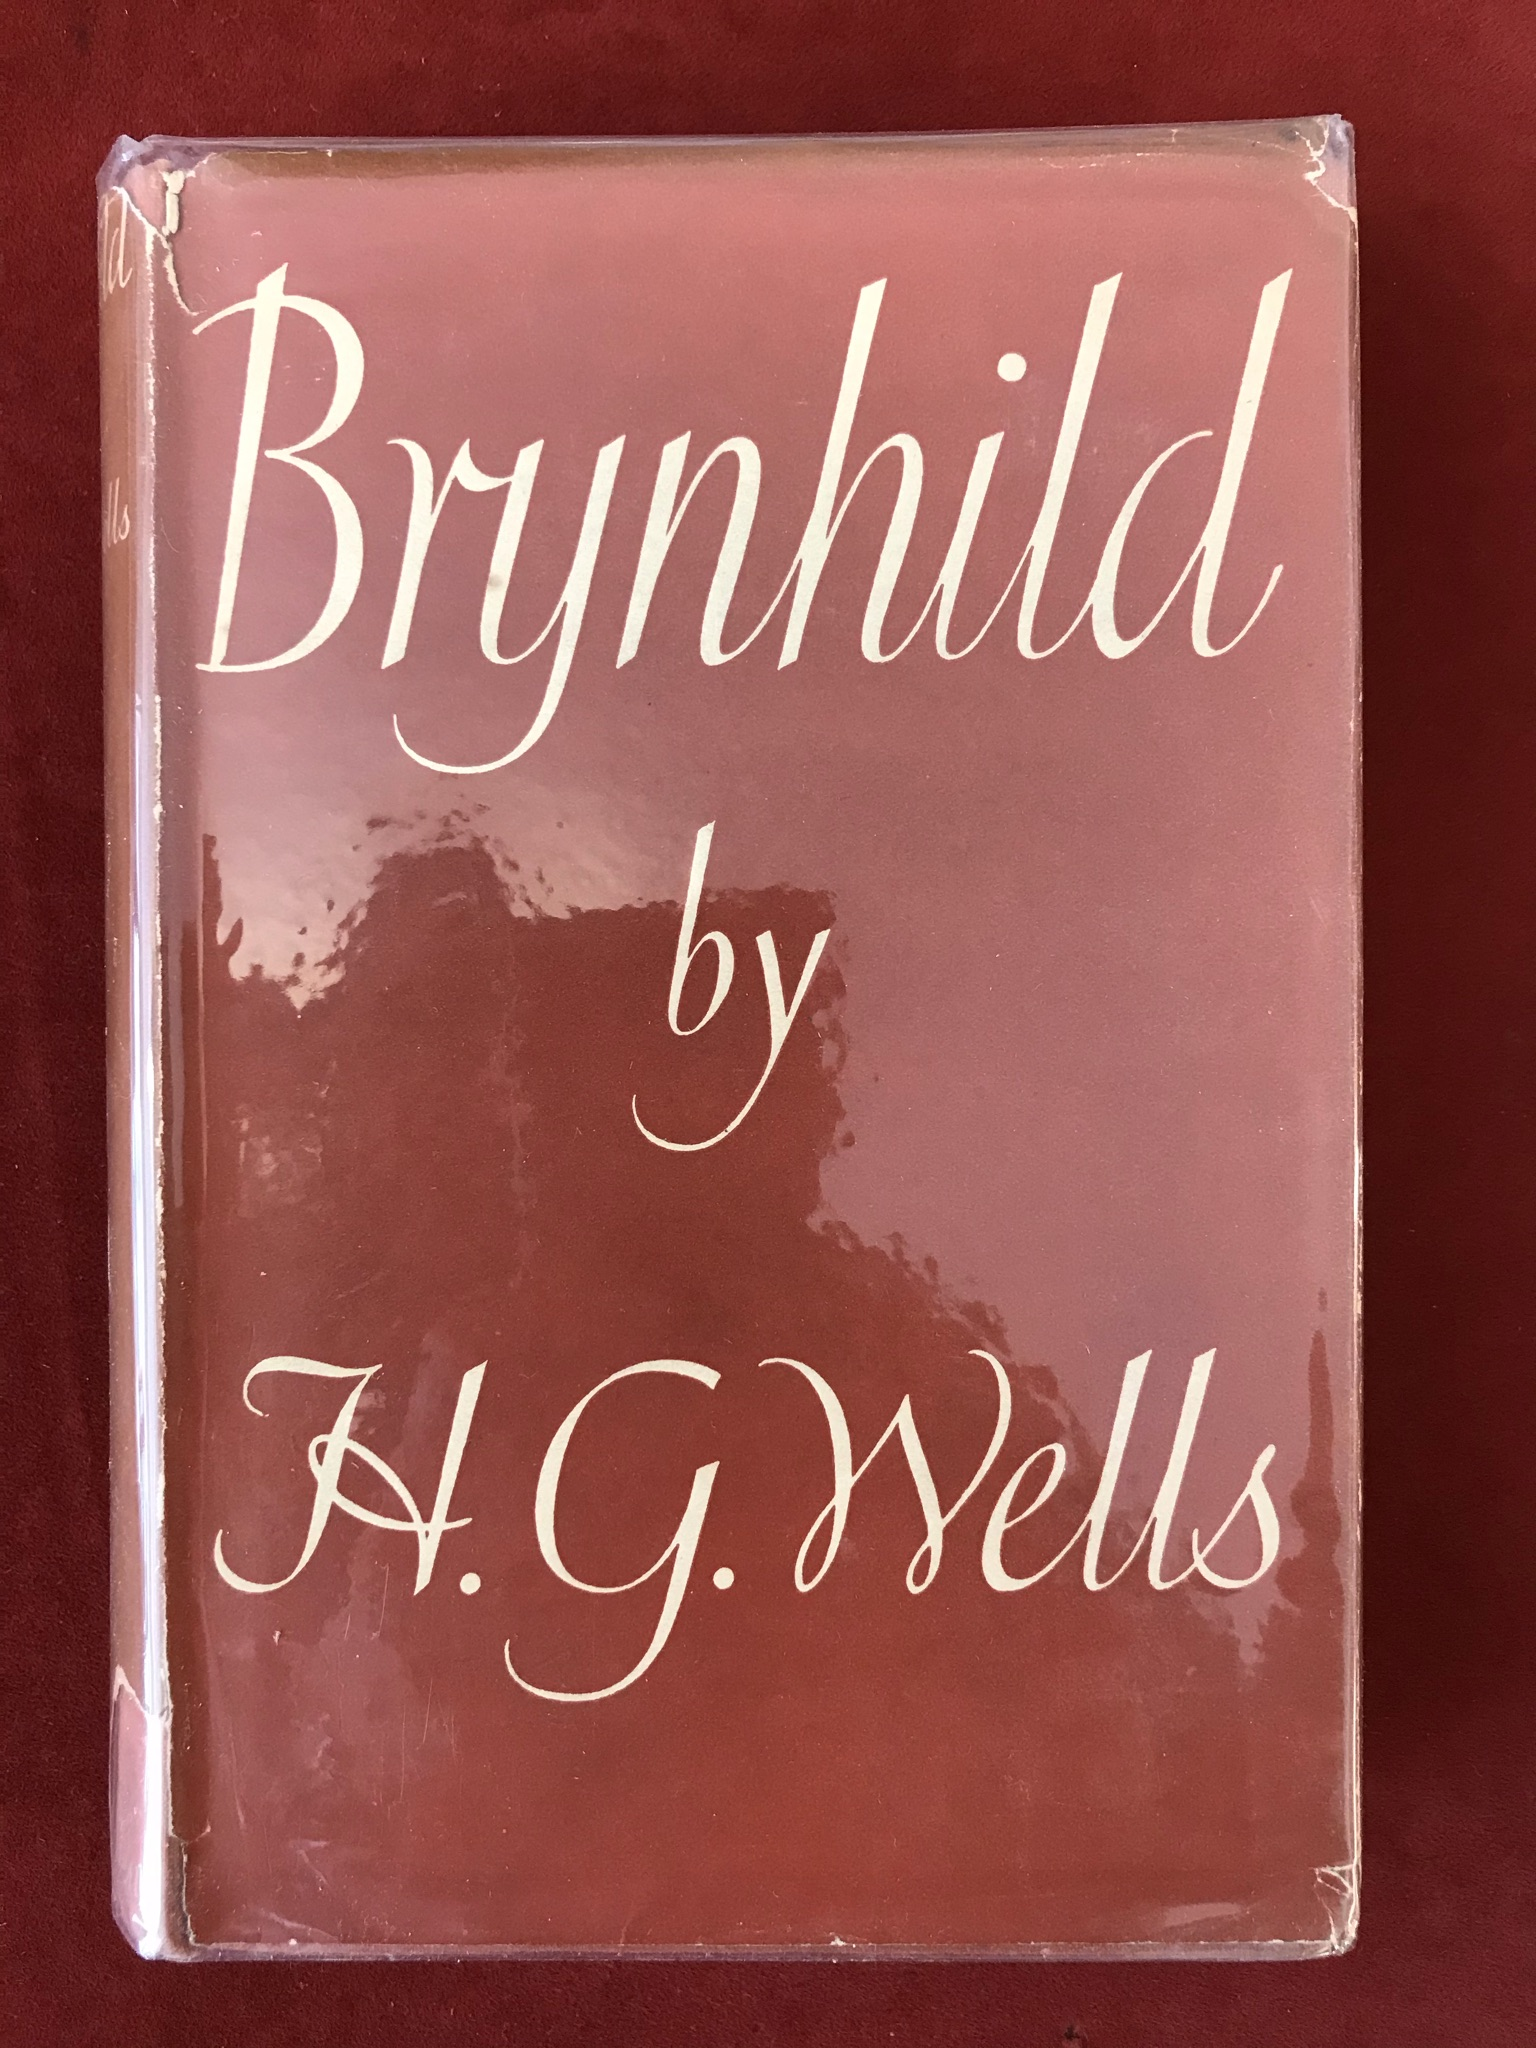 BrynhildFirst edition with D/W, 1937